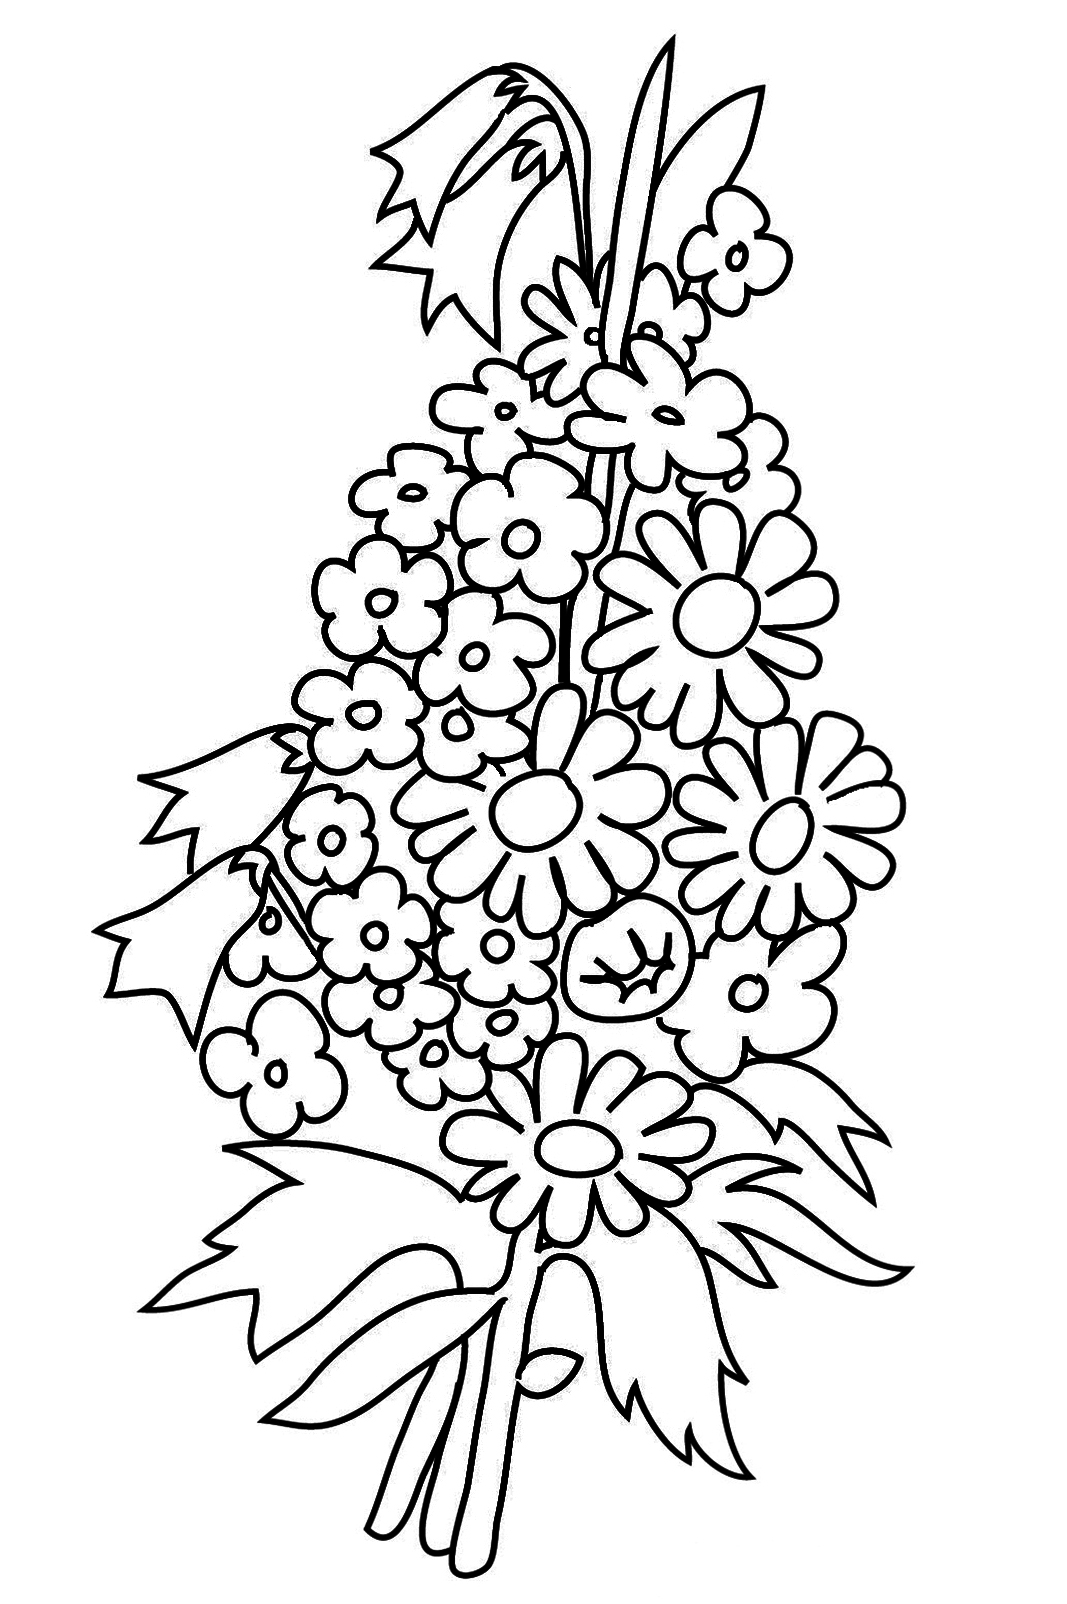 coloring pages flowers flower coloring pages for adults at getdrawings free coloring pages flowers